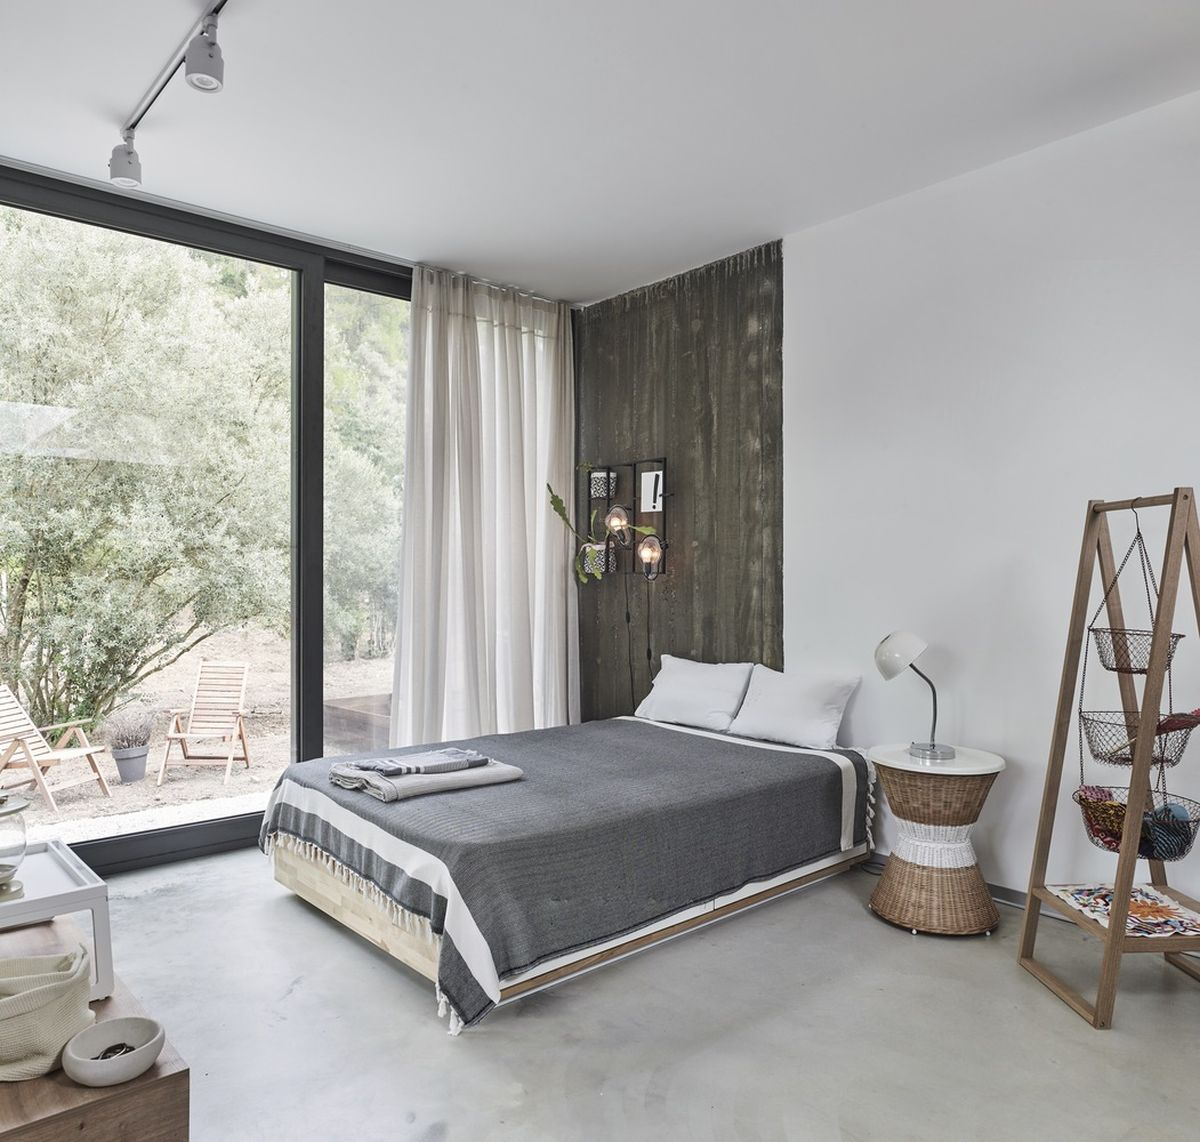 The polished concrete flooring and white walls are complemented by warm wood surfaces